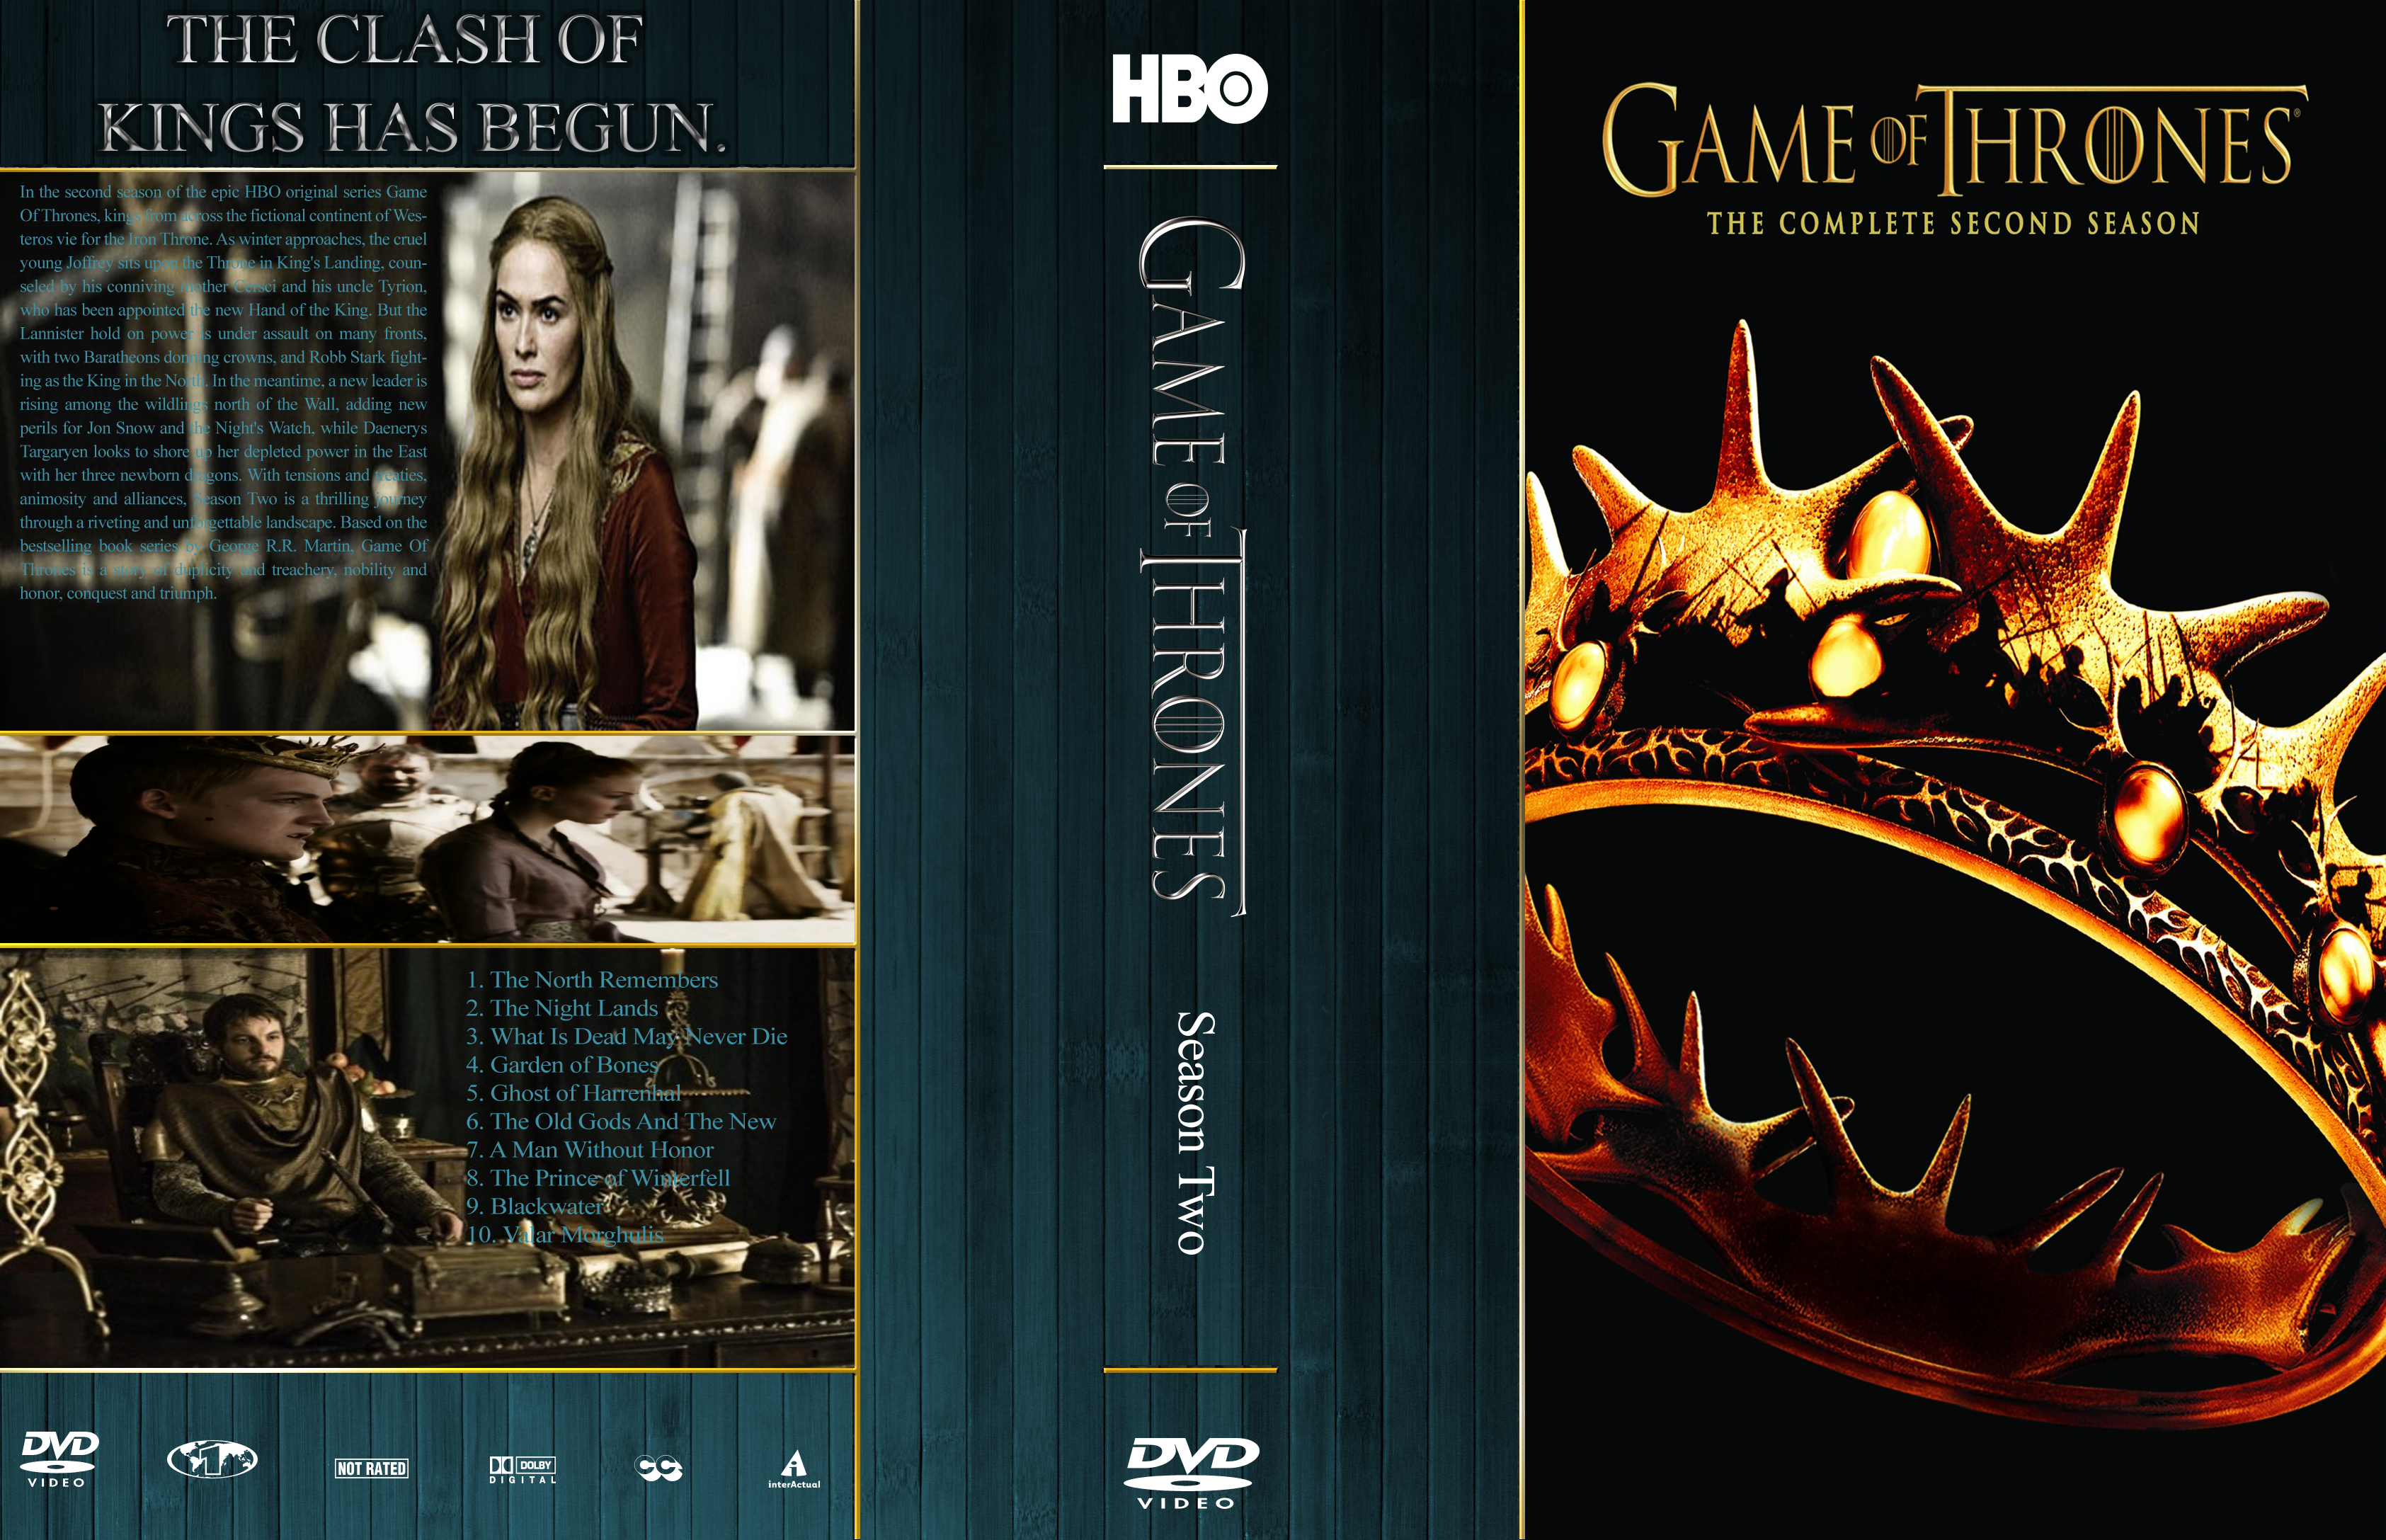 Game Of Thrones Season 2 R1 Cover By Mastrada101 On DeviantArt